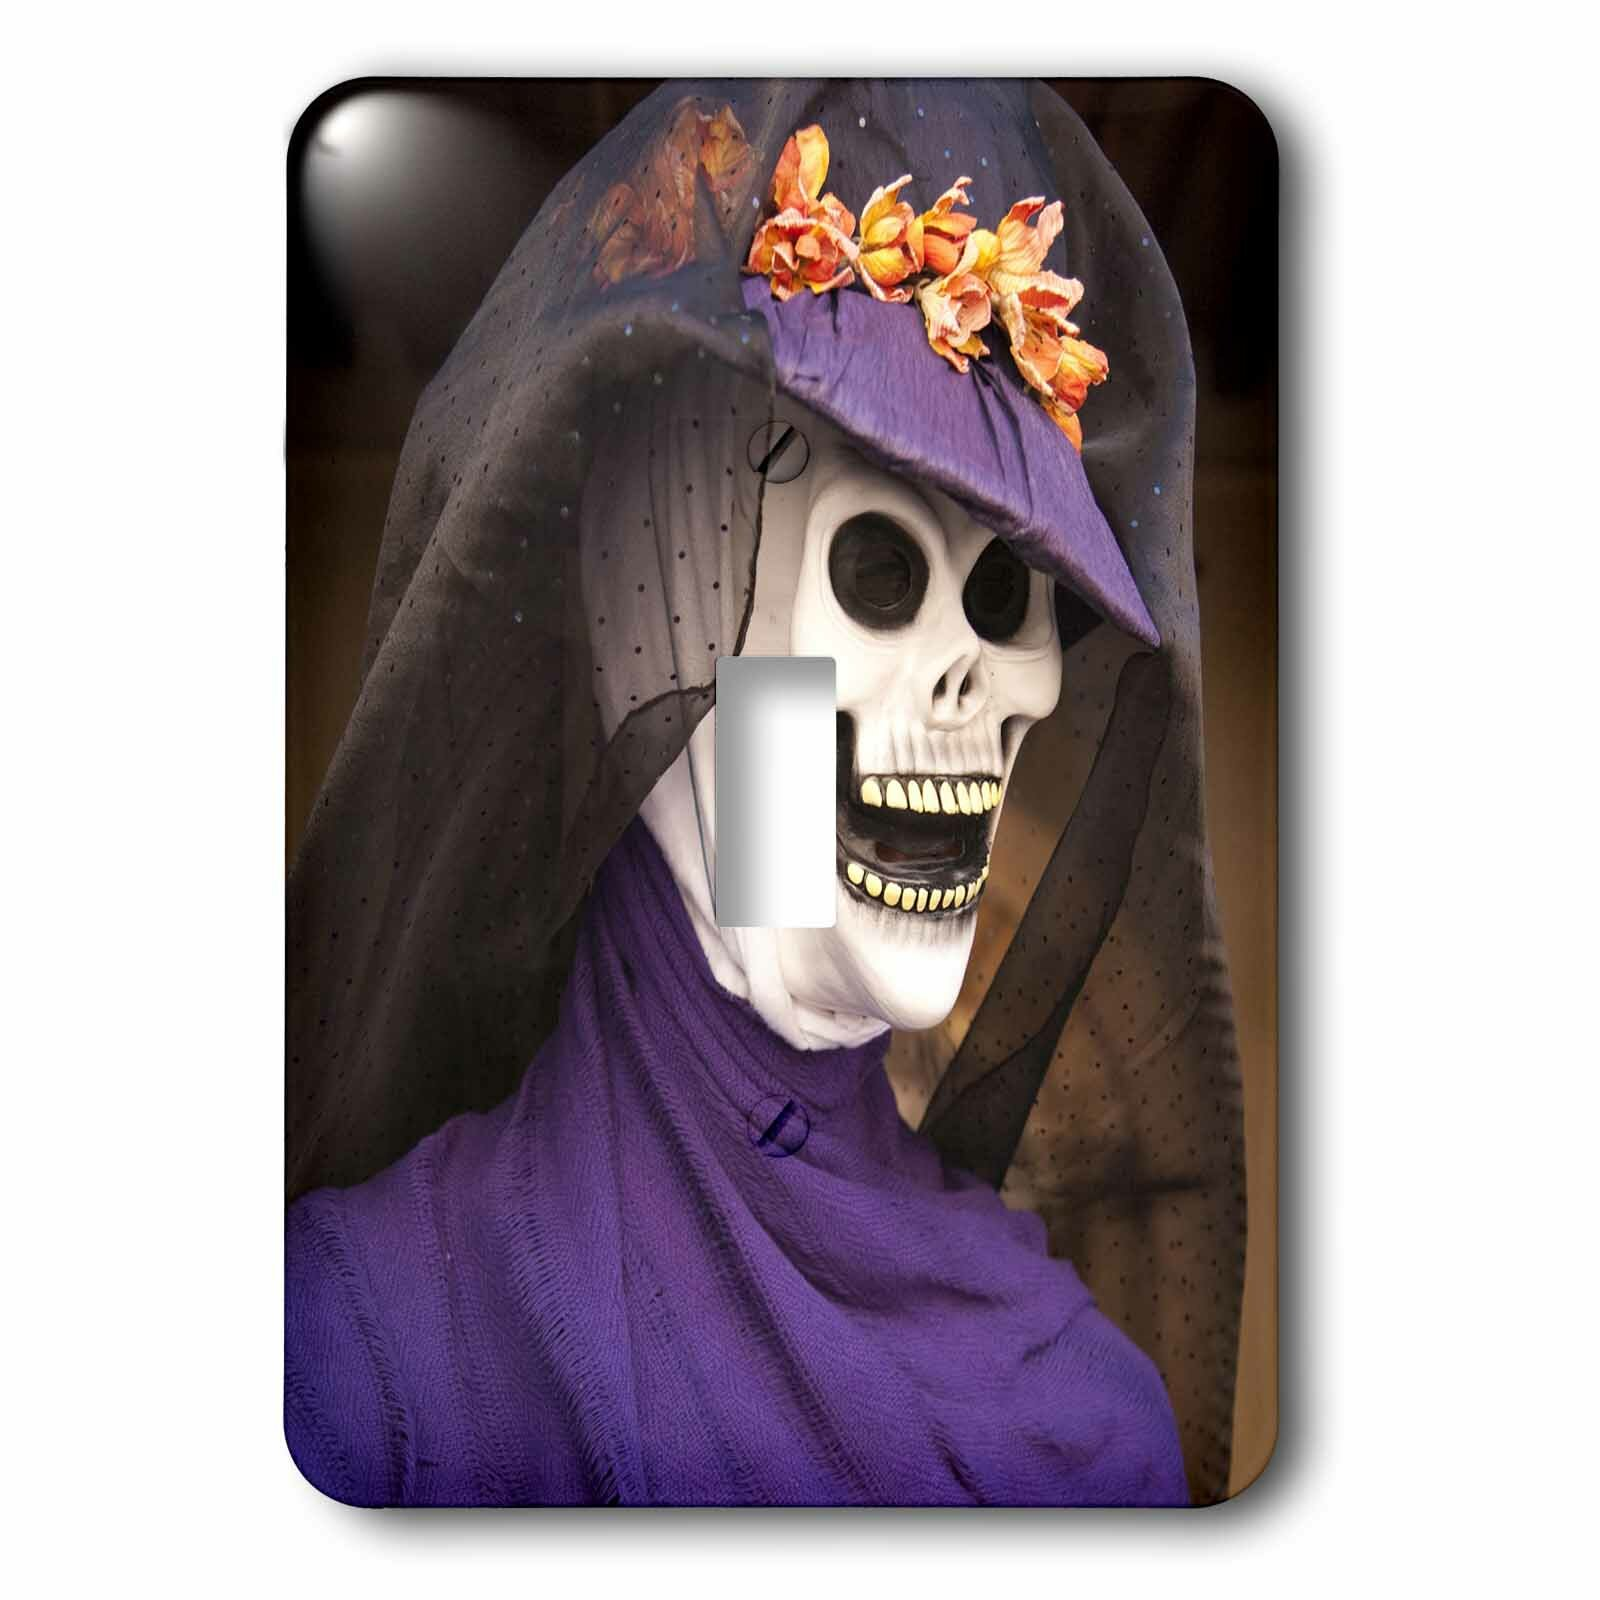 3drose Mexico Oaxaca Day Of The Dead Skeleton 1 Gang Toggle Light Switch Wall Plate Wayfair